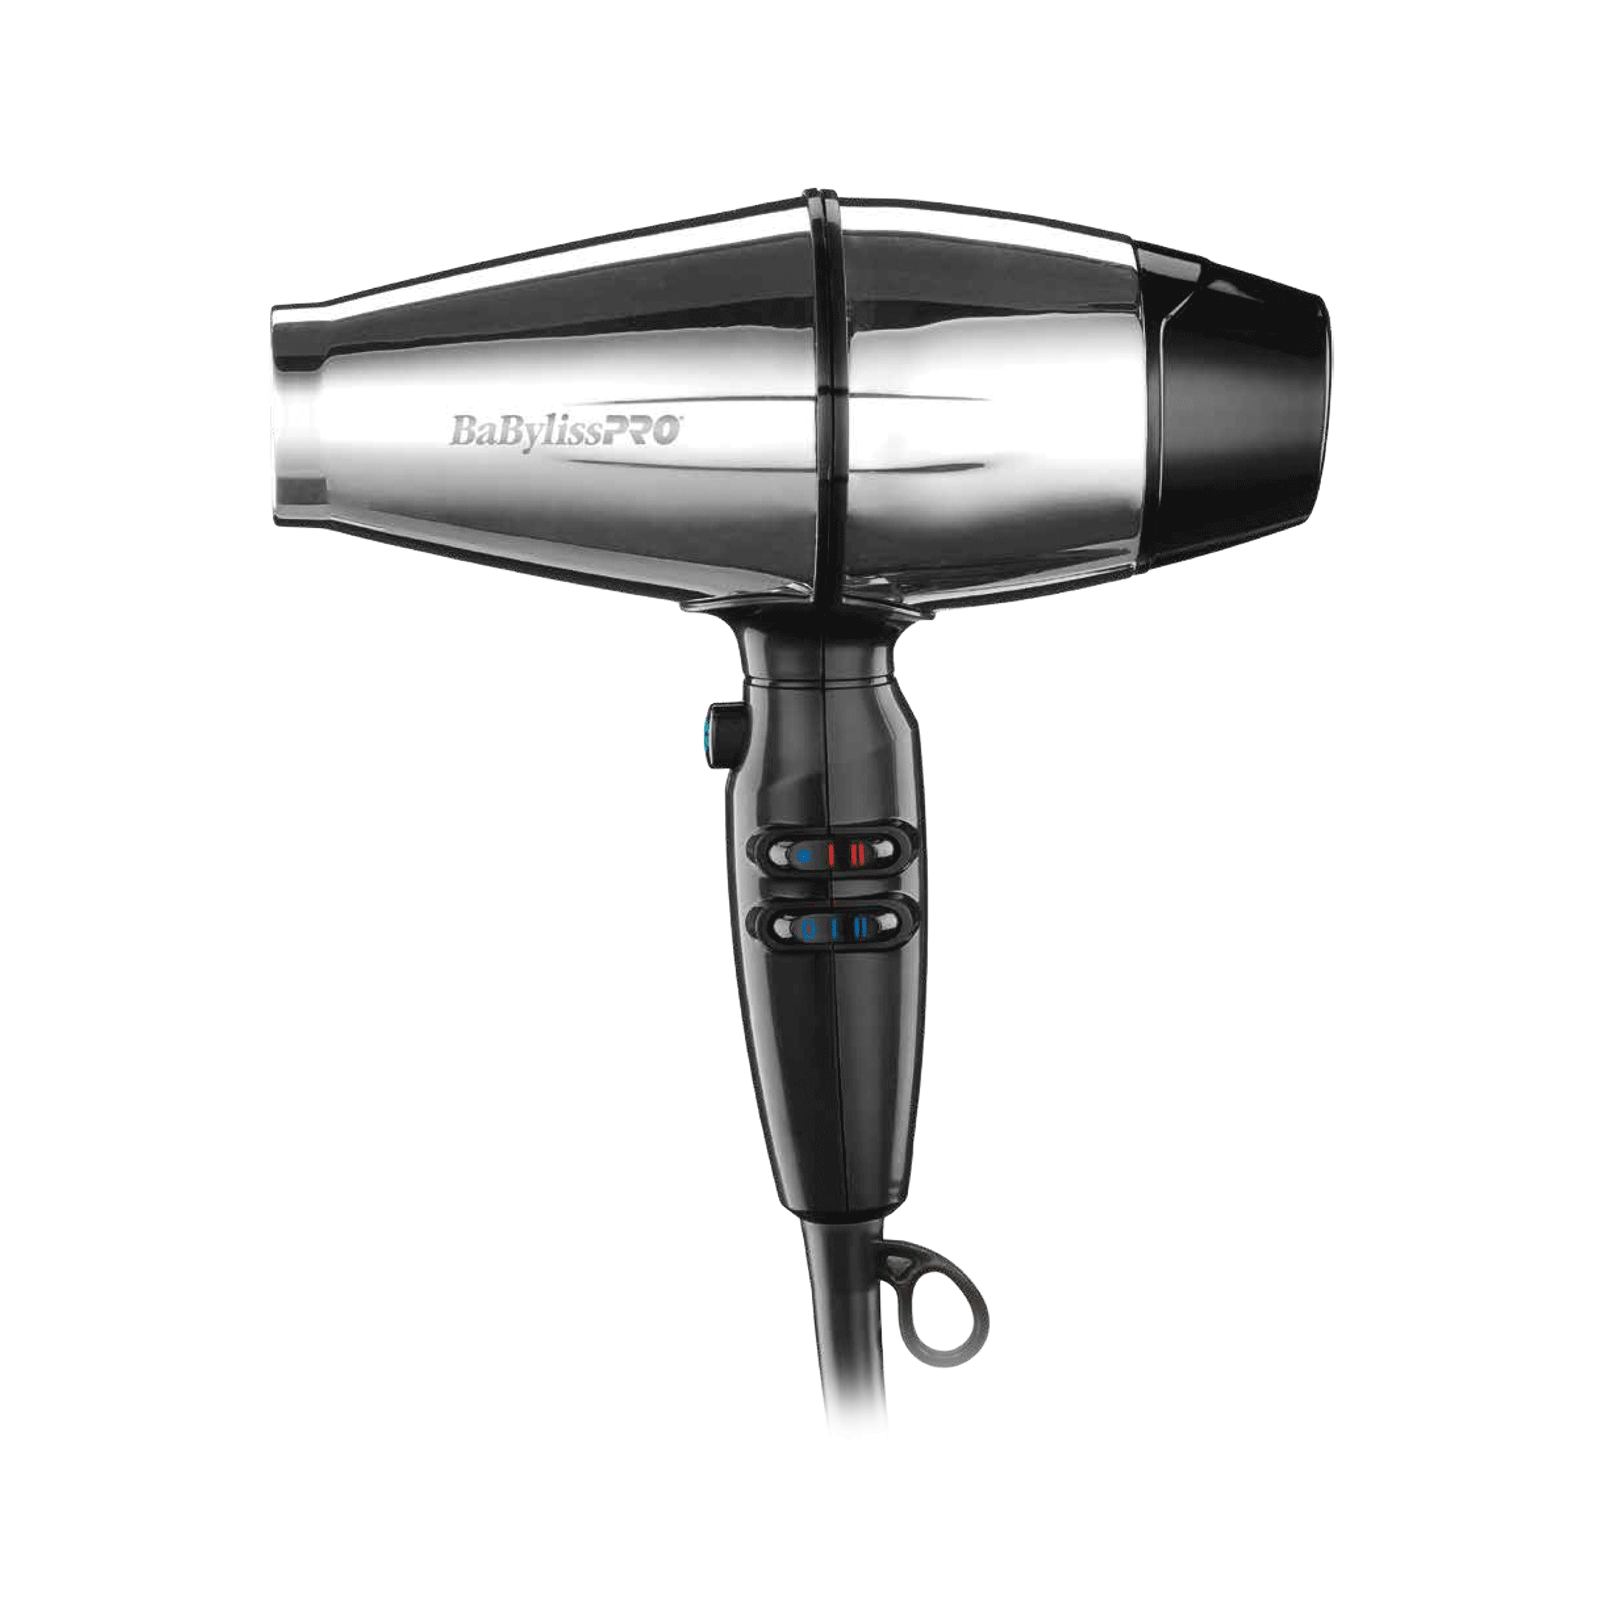 BaByliss Pro Stainless Steel Hairdryer